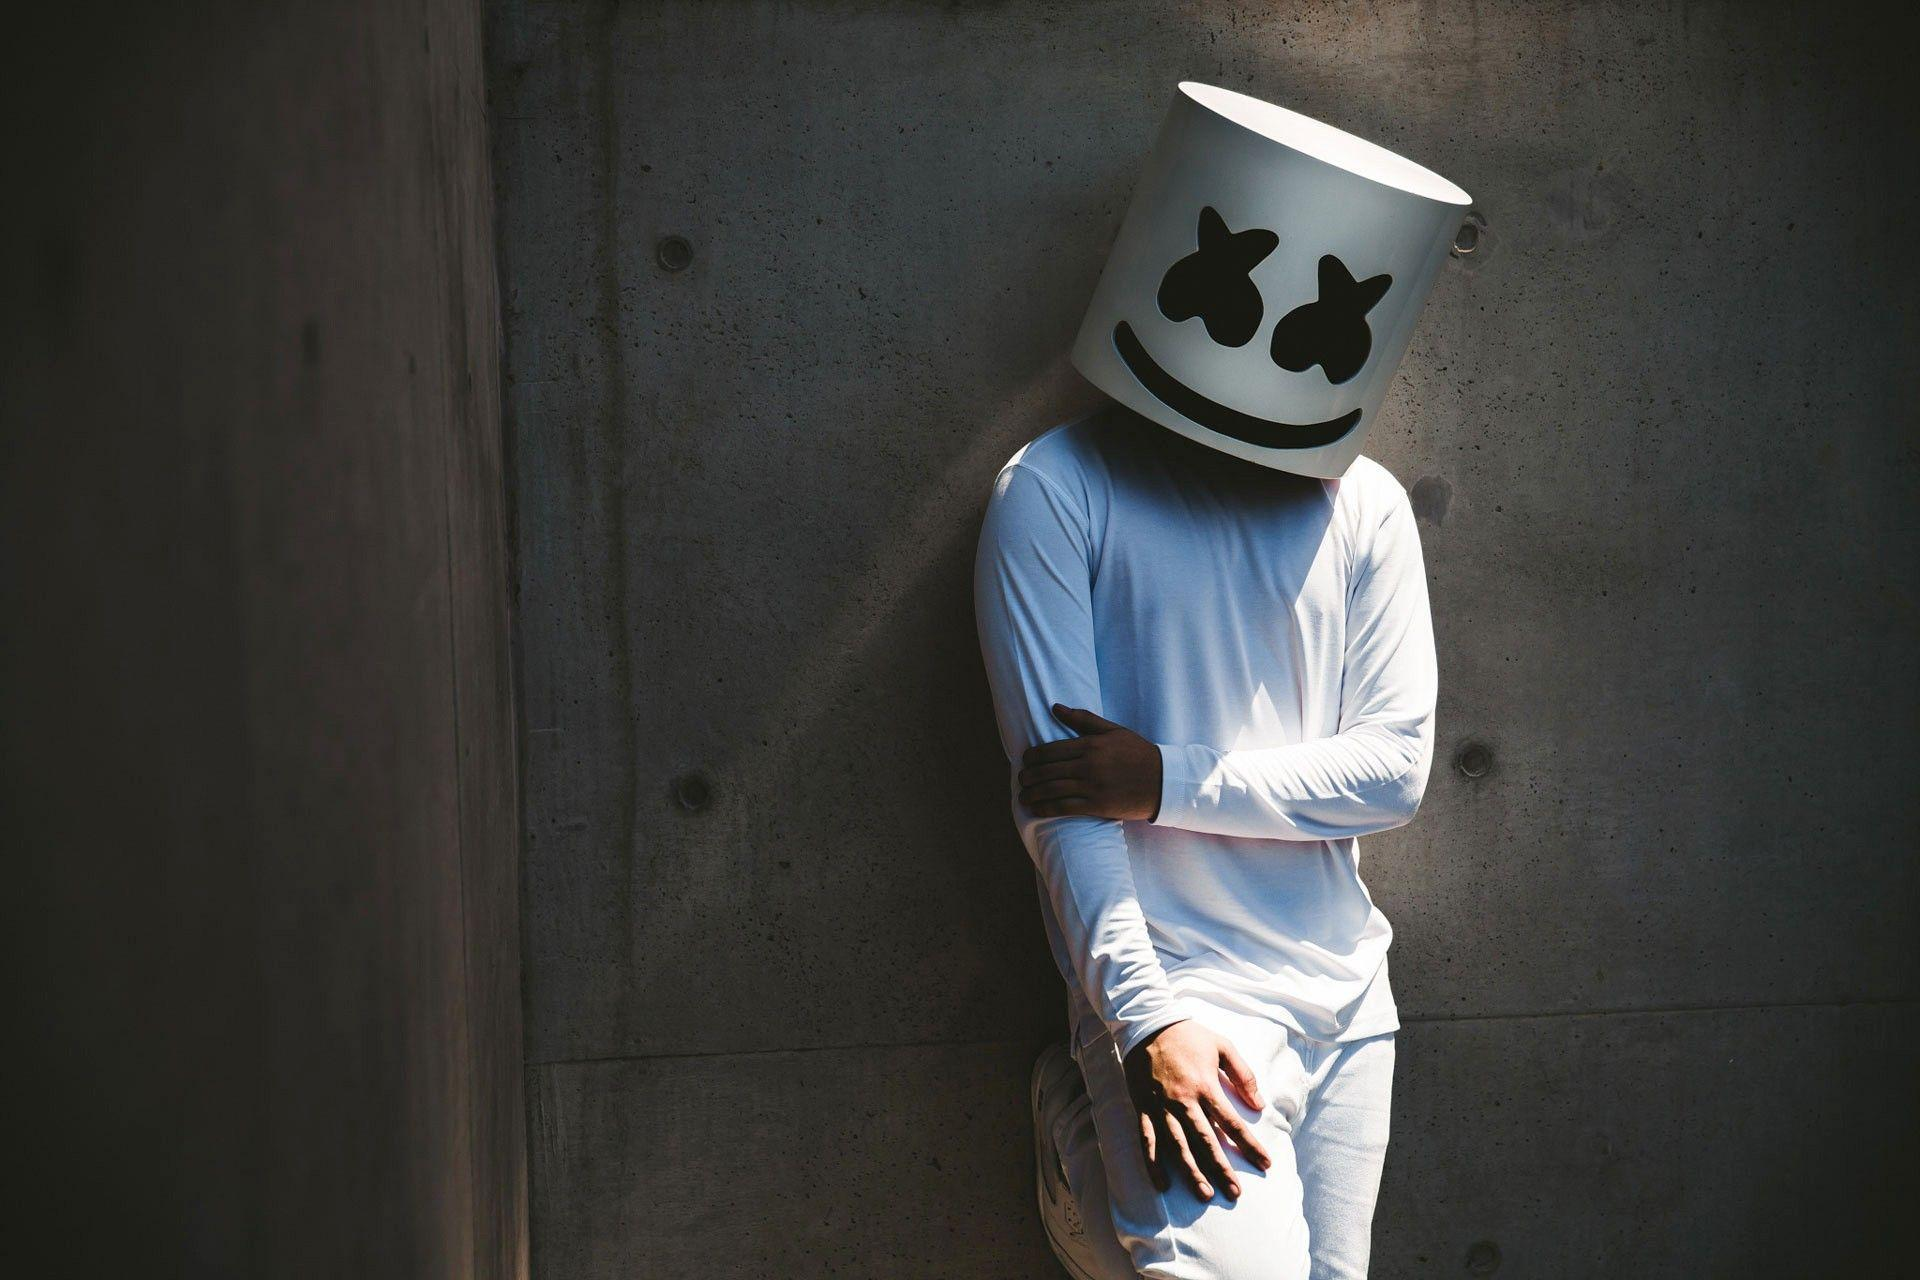 Marshmello Hd Desktop Wallpapers